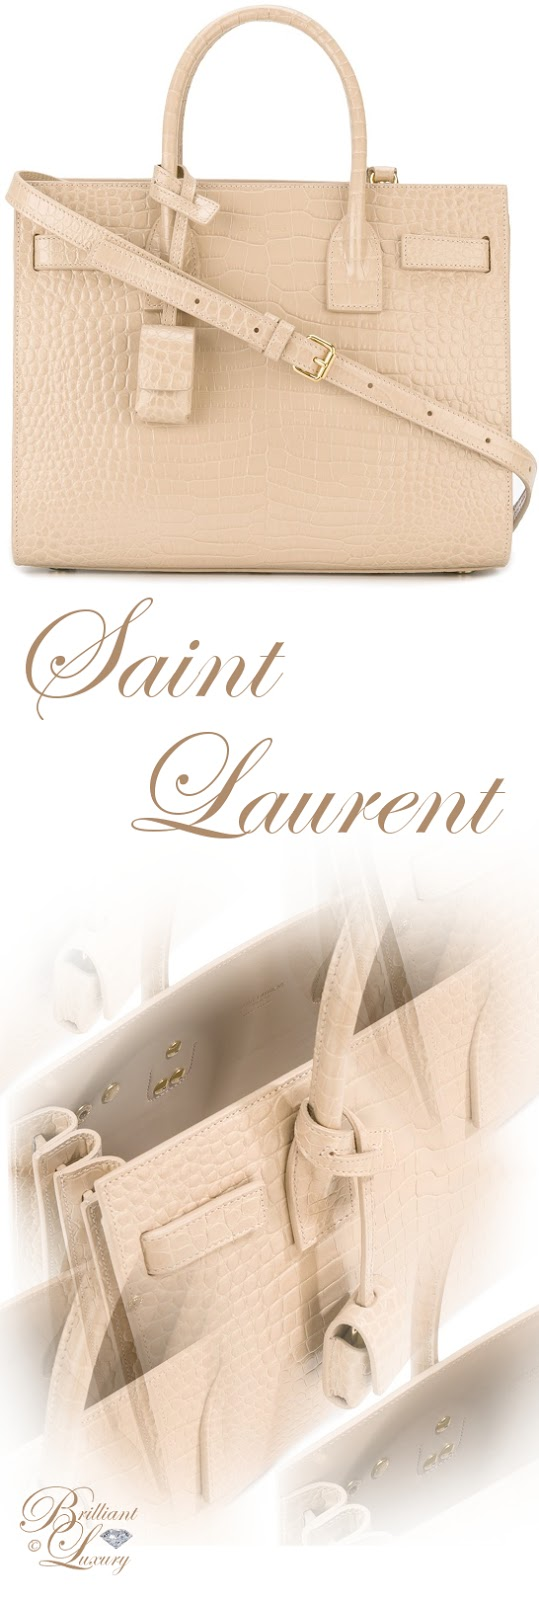 Brilliant Luxury ♦ Saint Laurent Baby Sac de Jour Tote